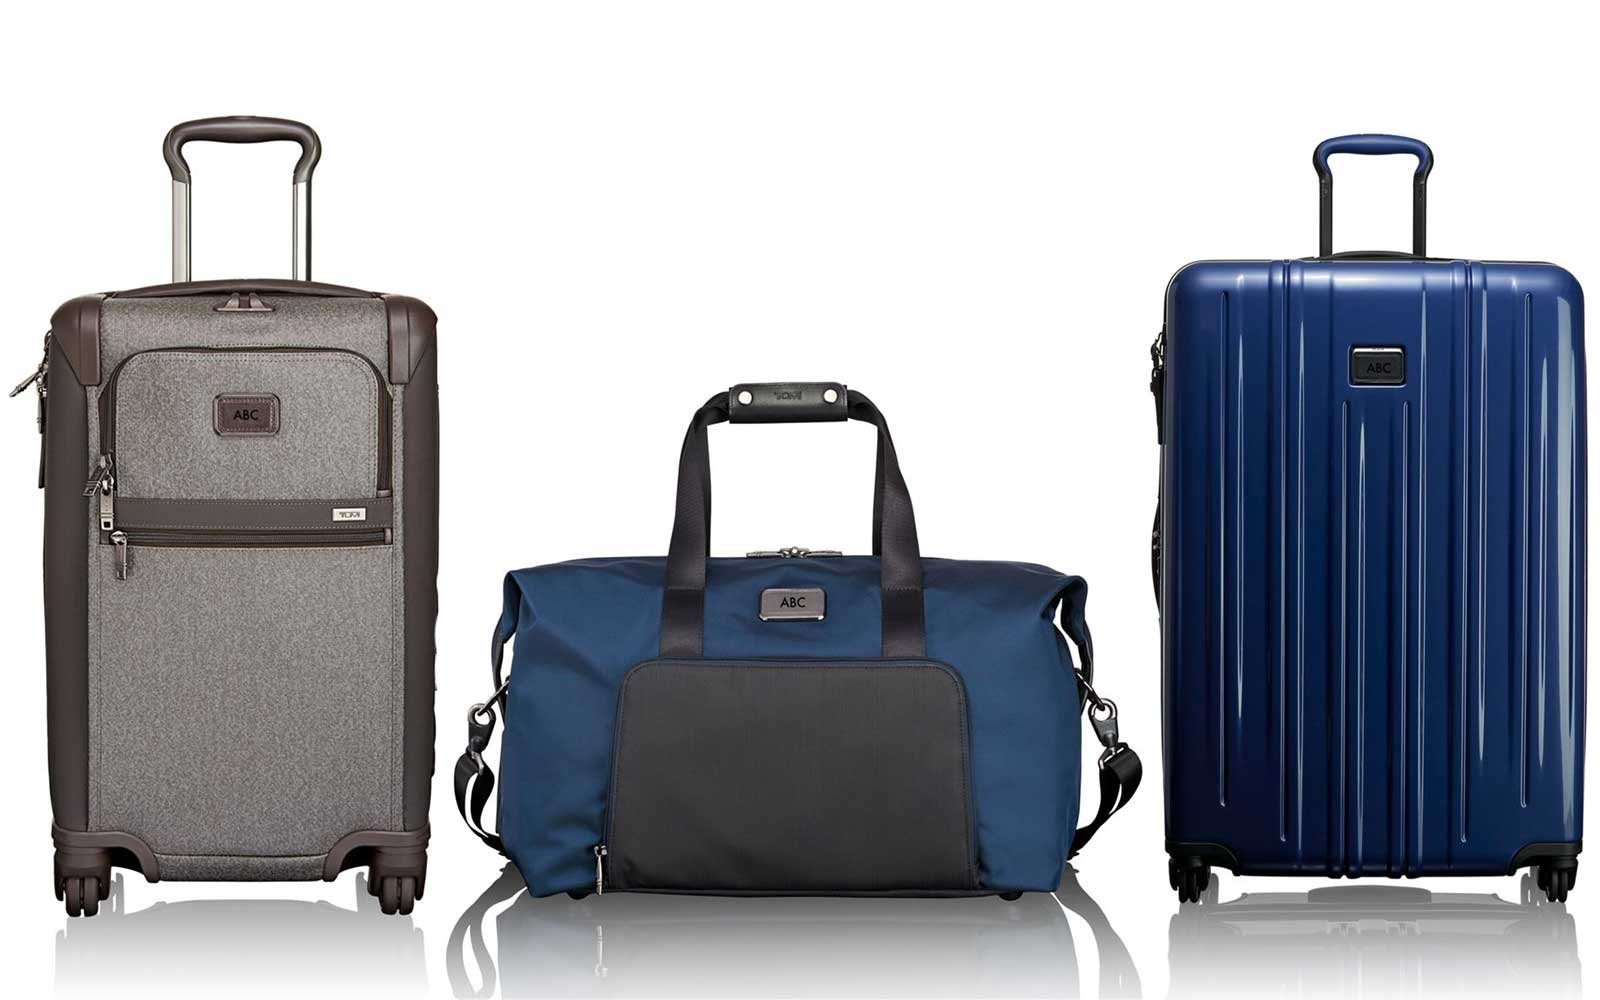 Tumi Luggage and Suitcases